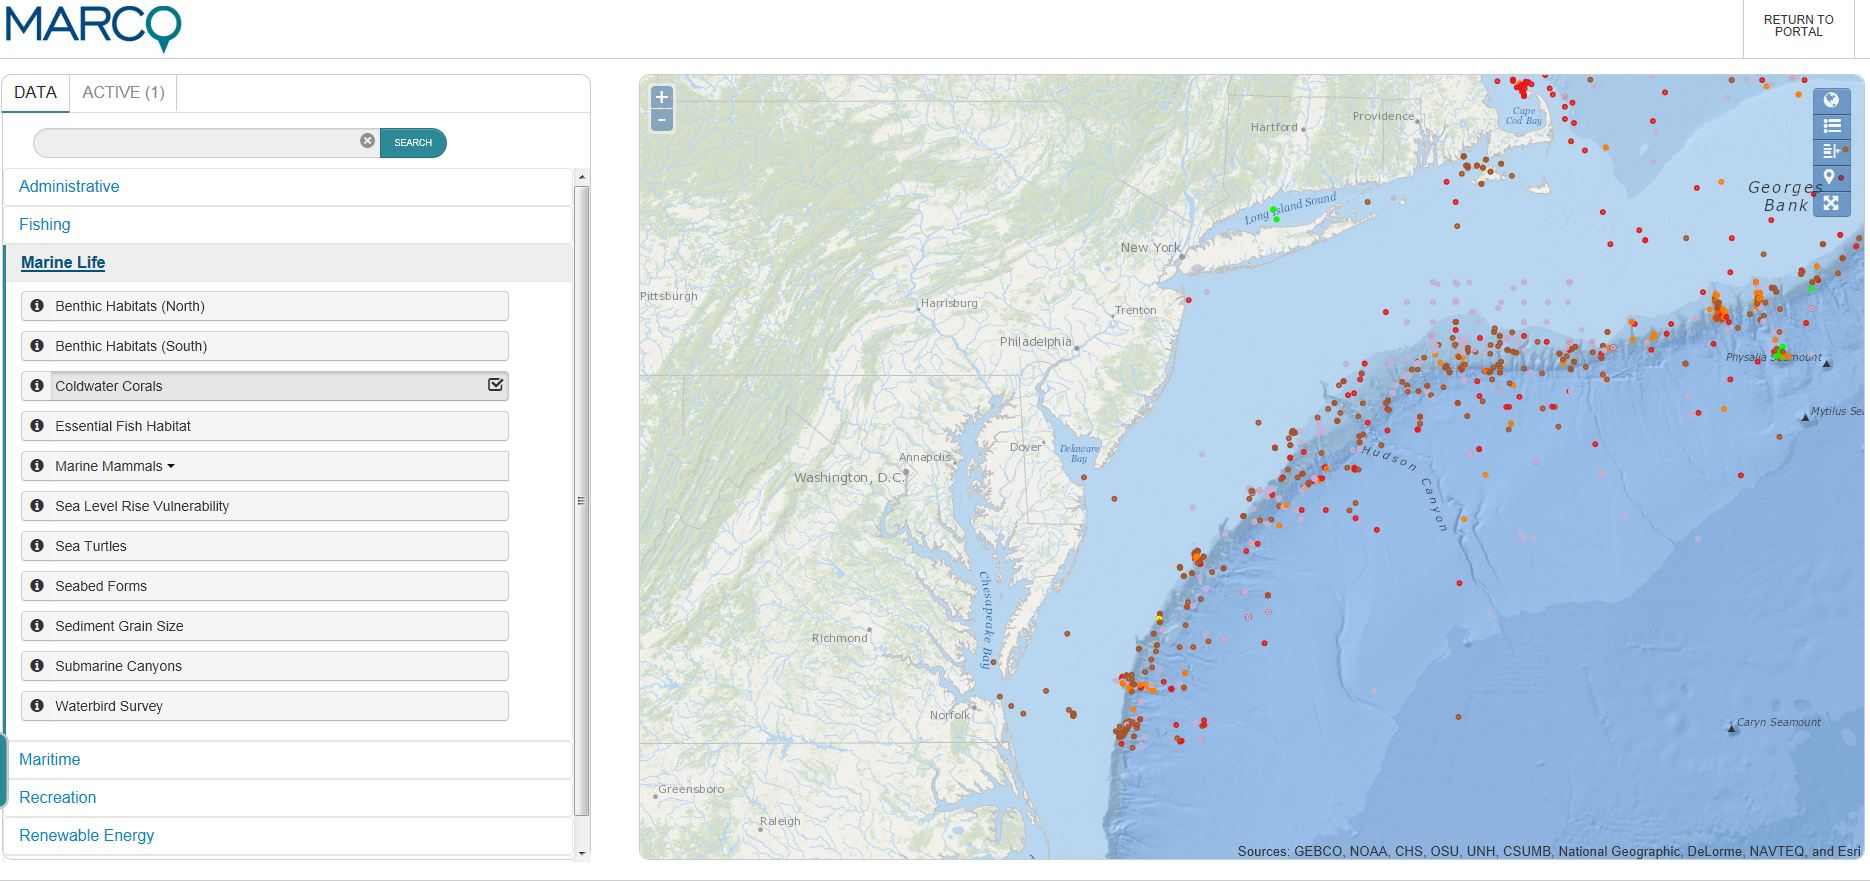 The MARCO Portal and other data visualization tools are key piece of implementing the national ocean plan.